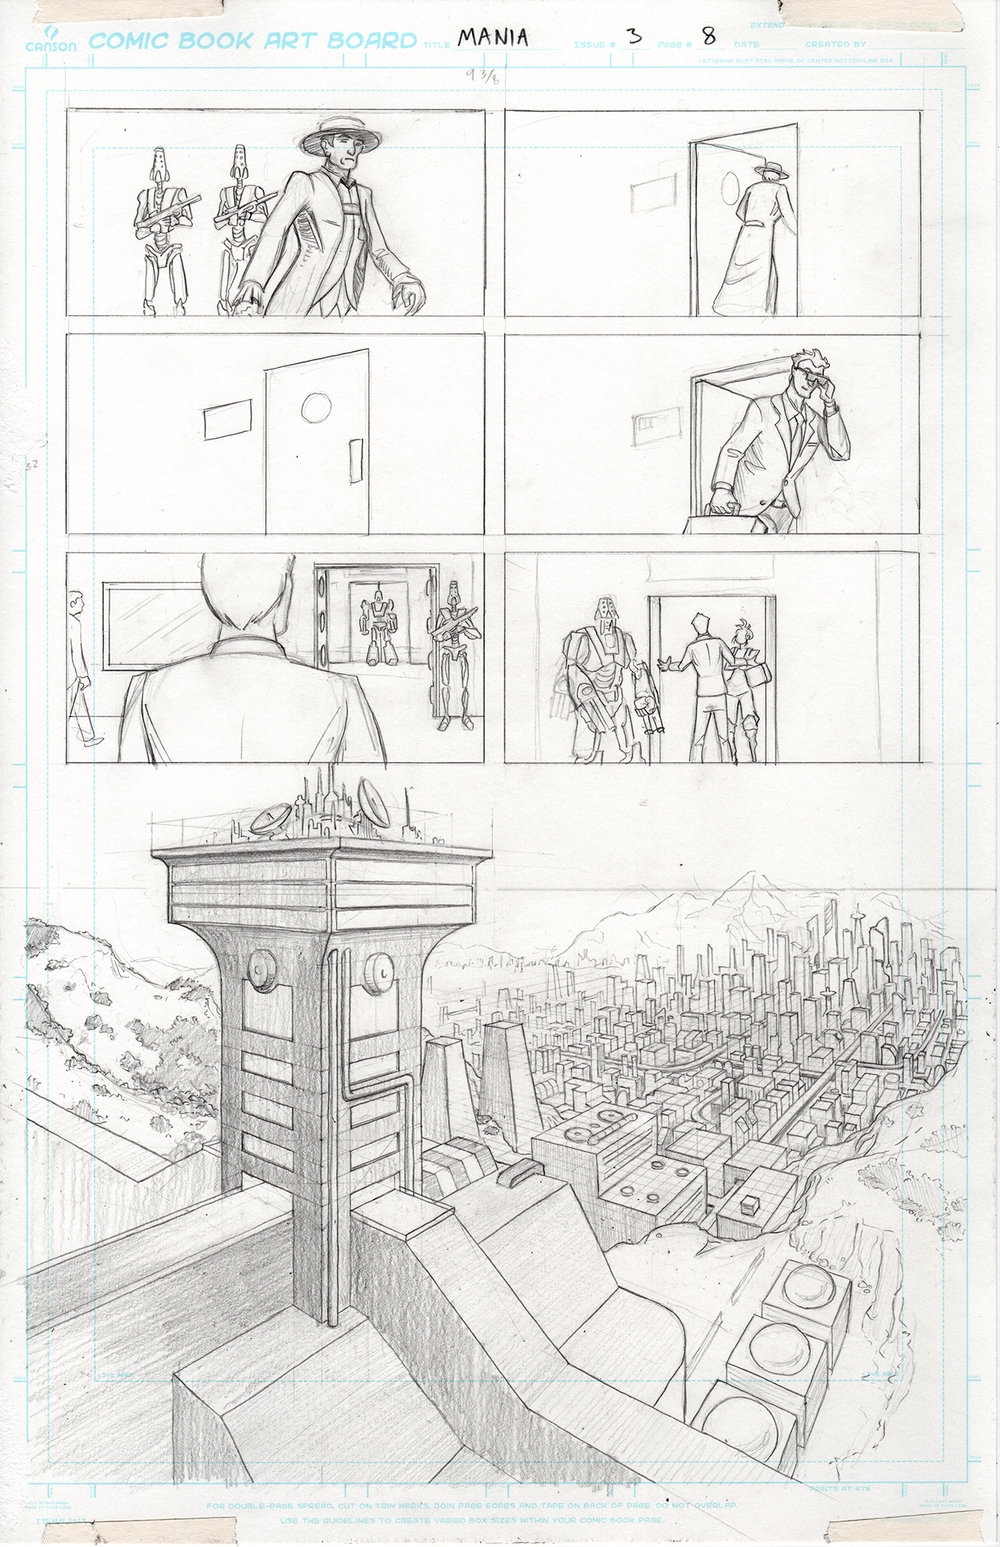 MANIA Issue 3, Page 8